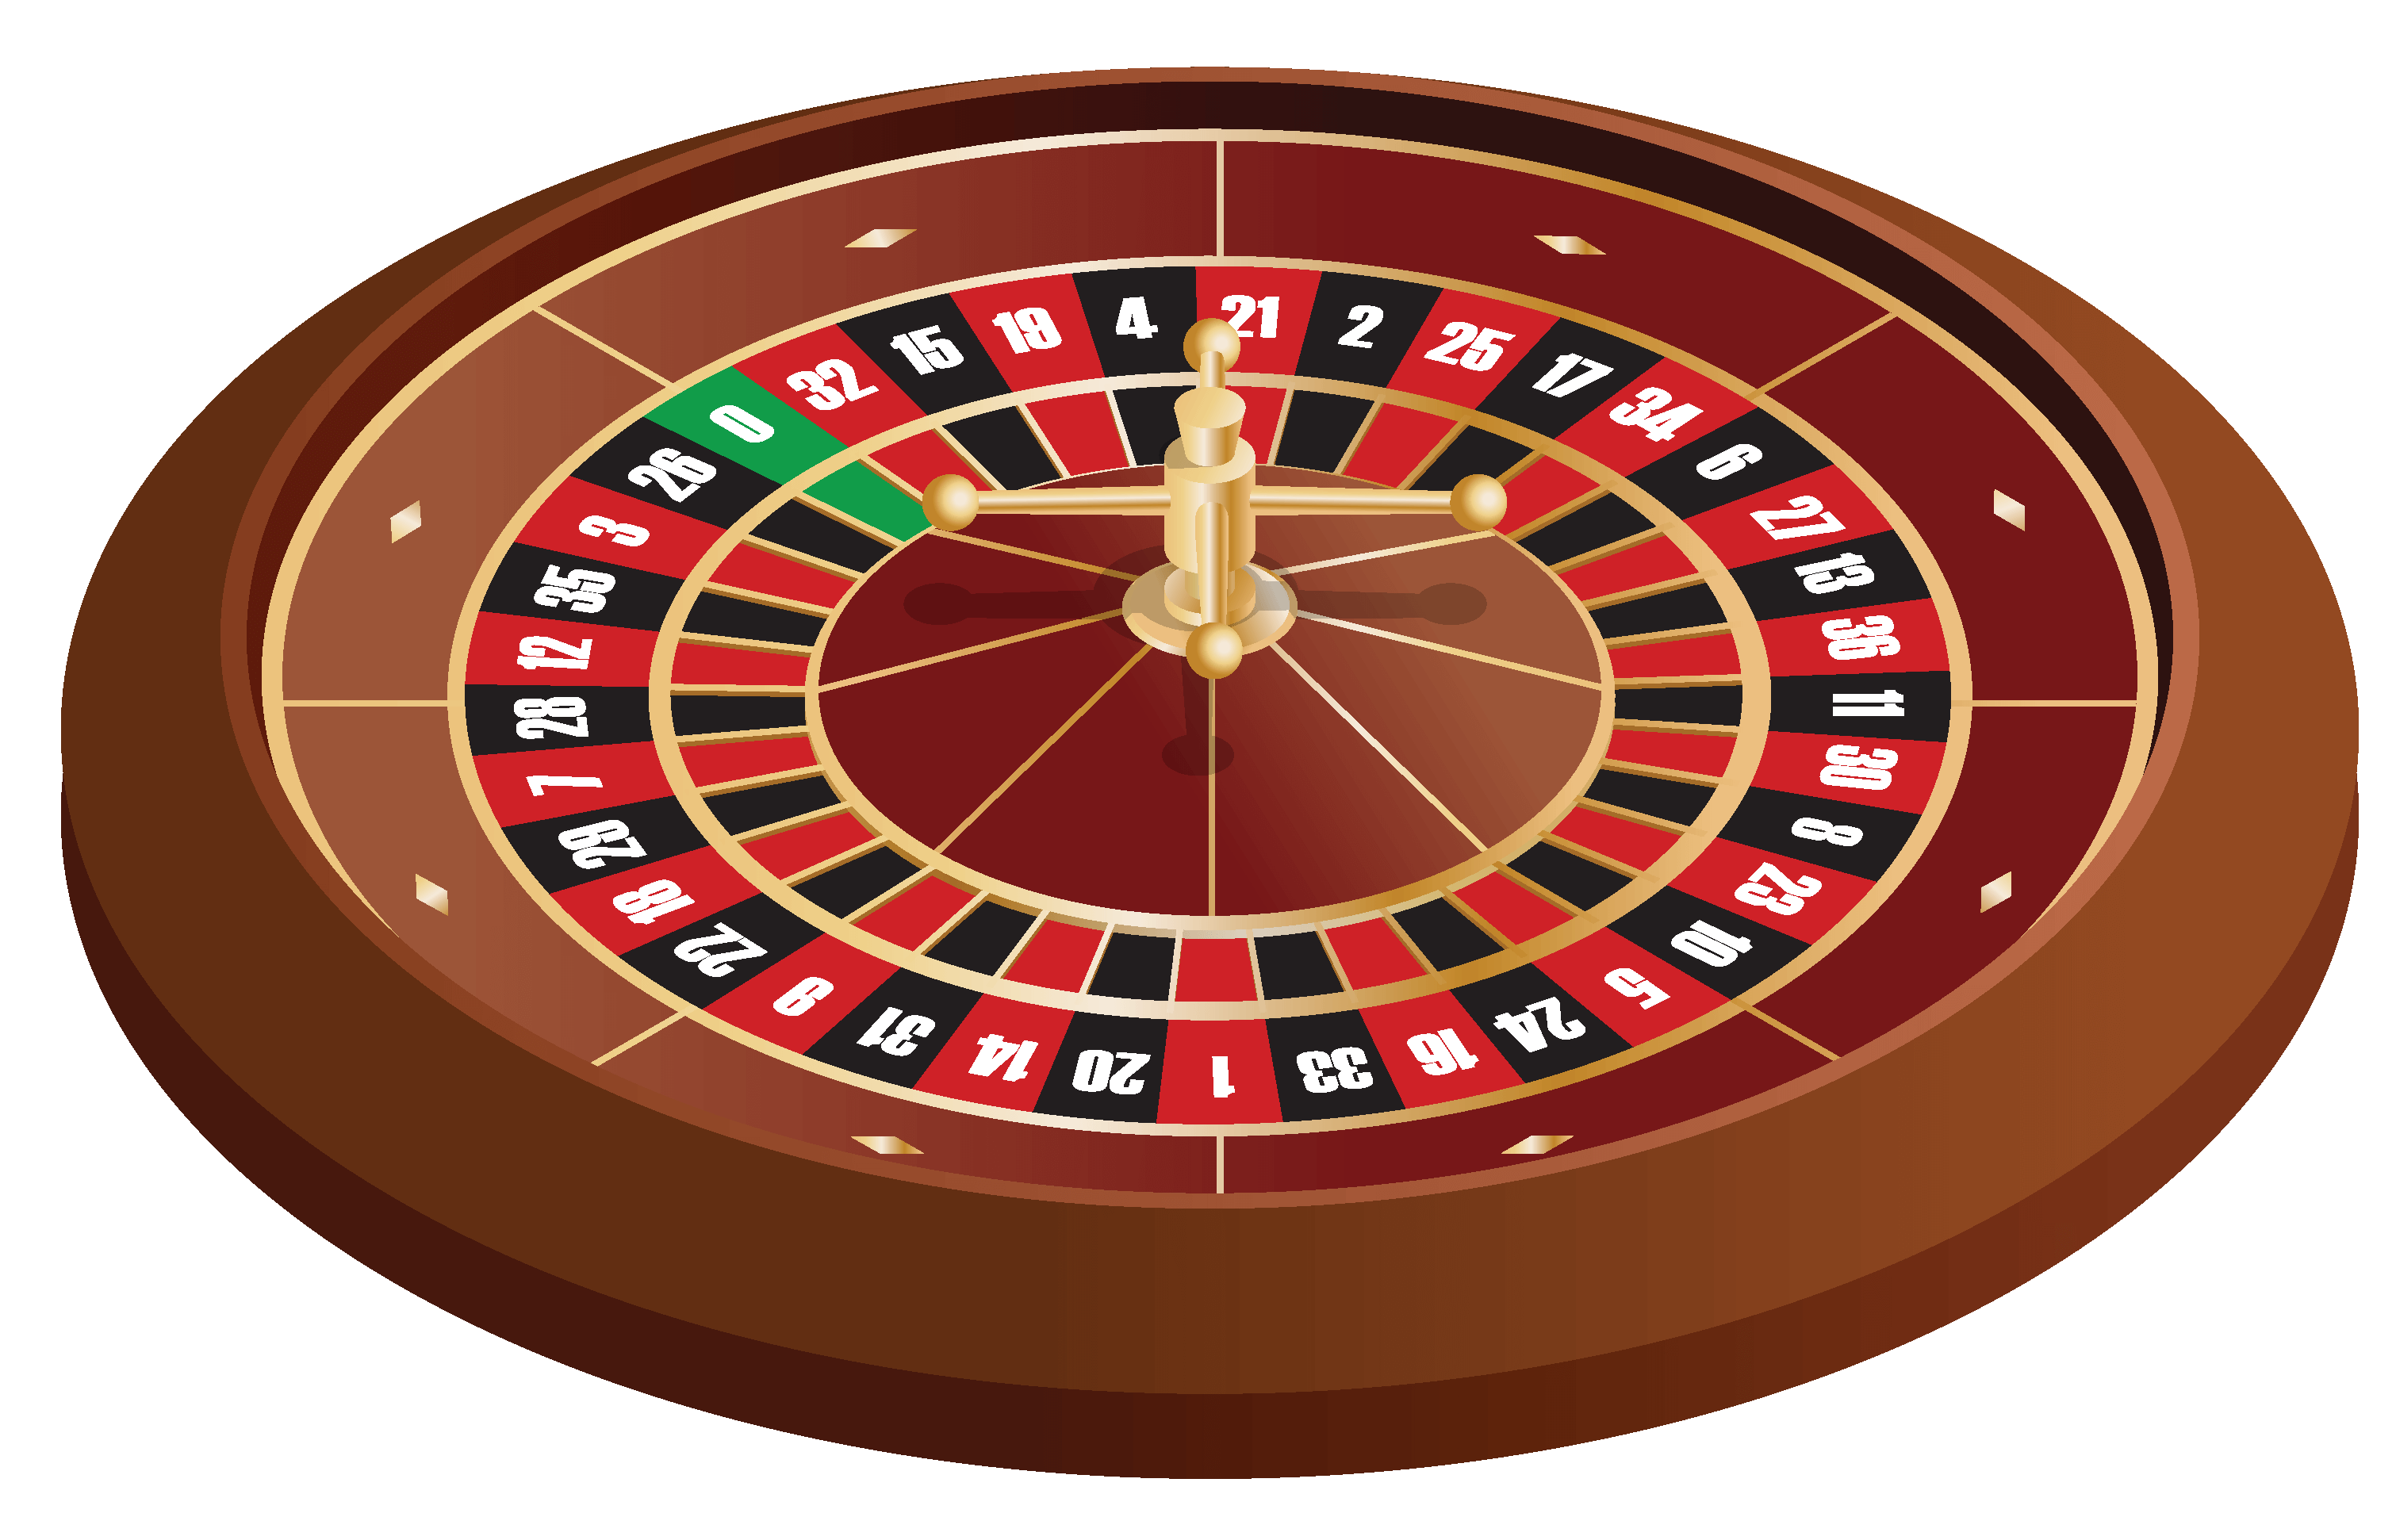 An image of the roulette table